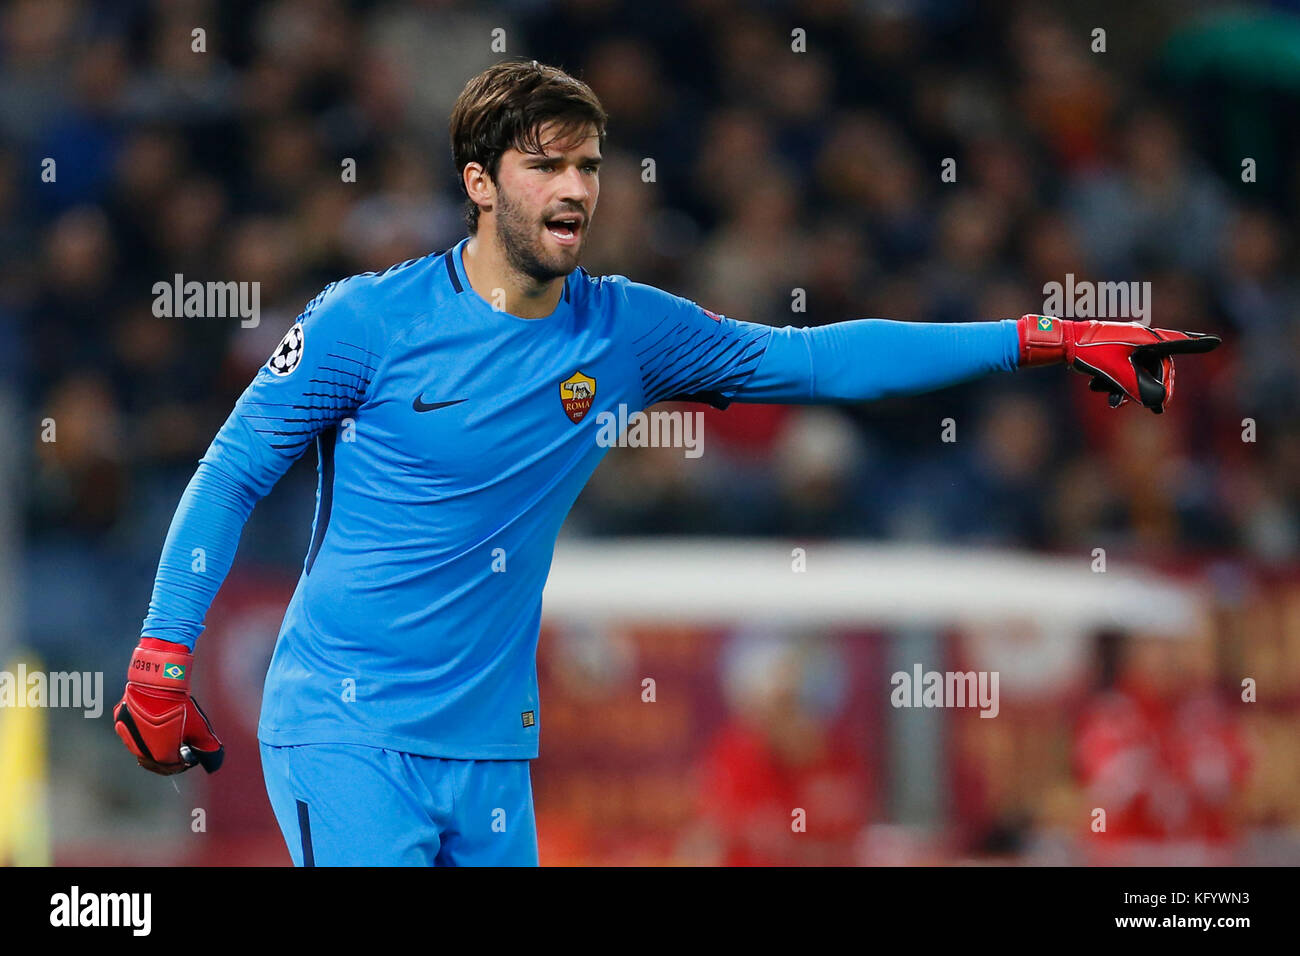 ee539d464 Alisson Becker Photos   Alisson Becker Images - Alamy